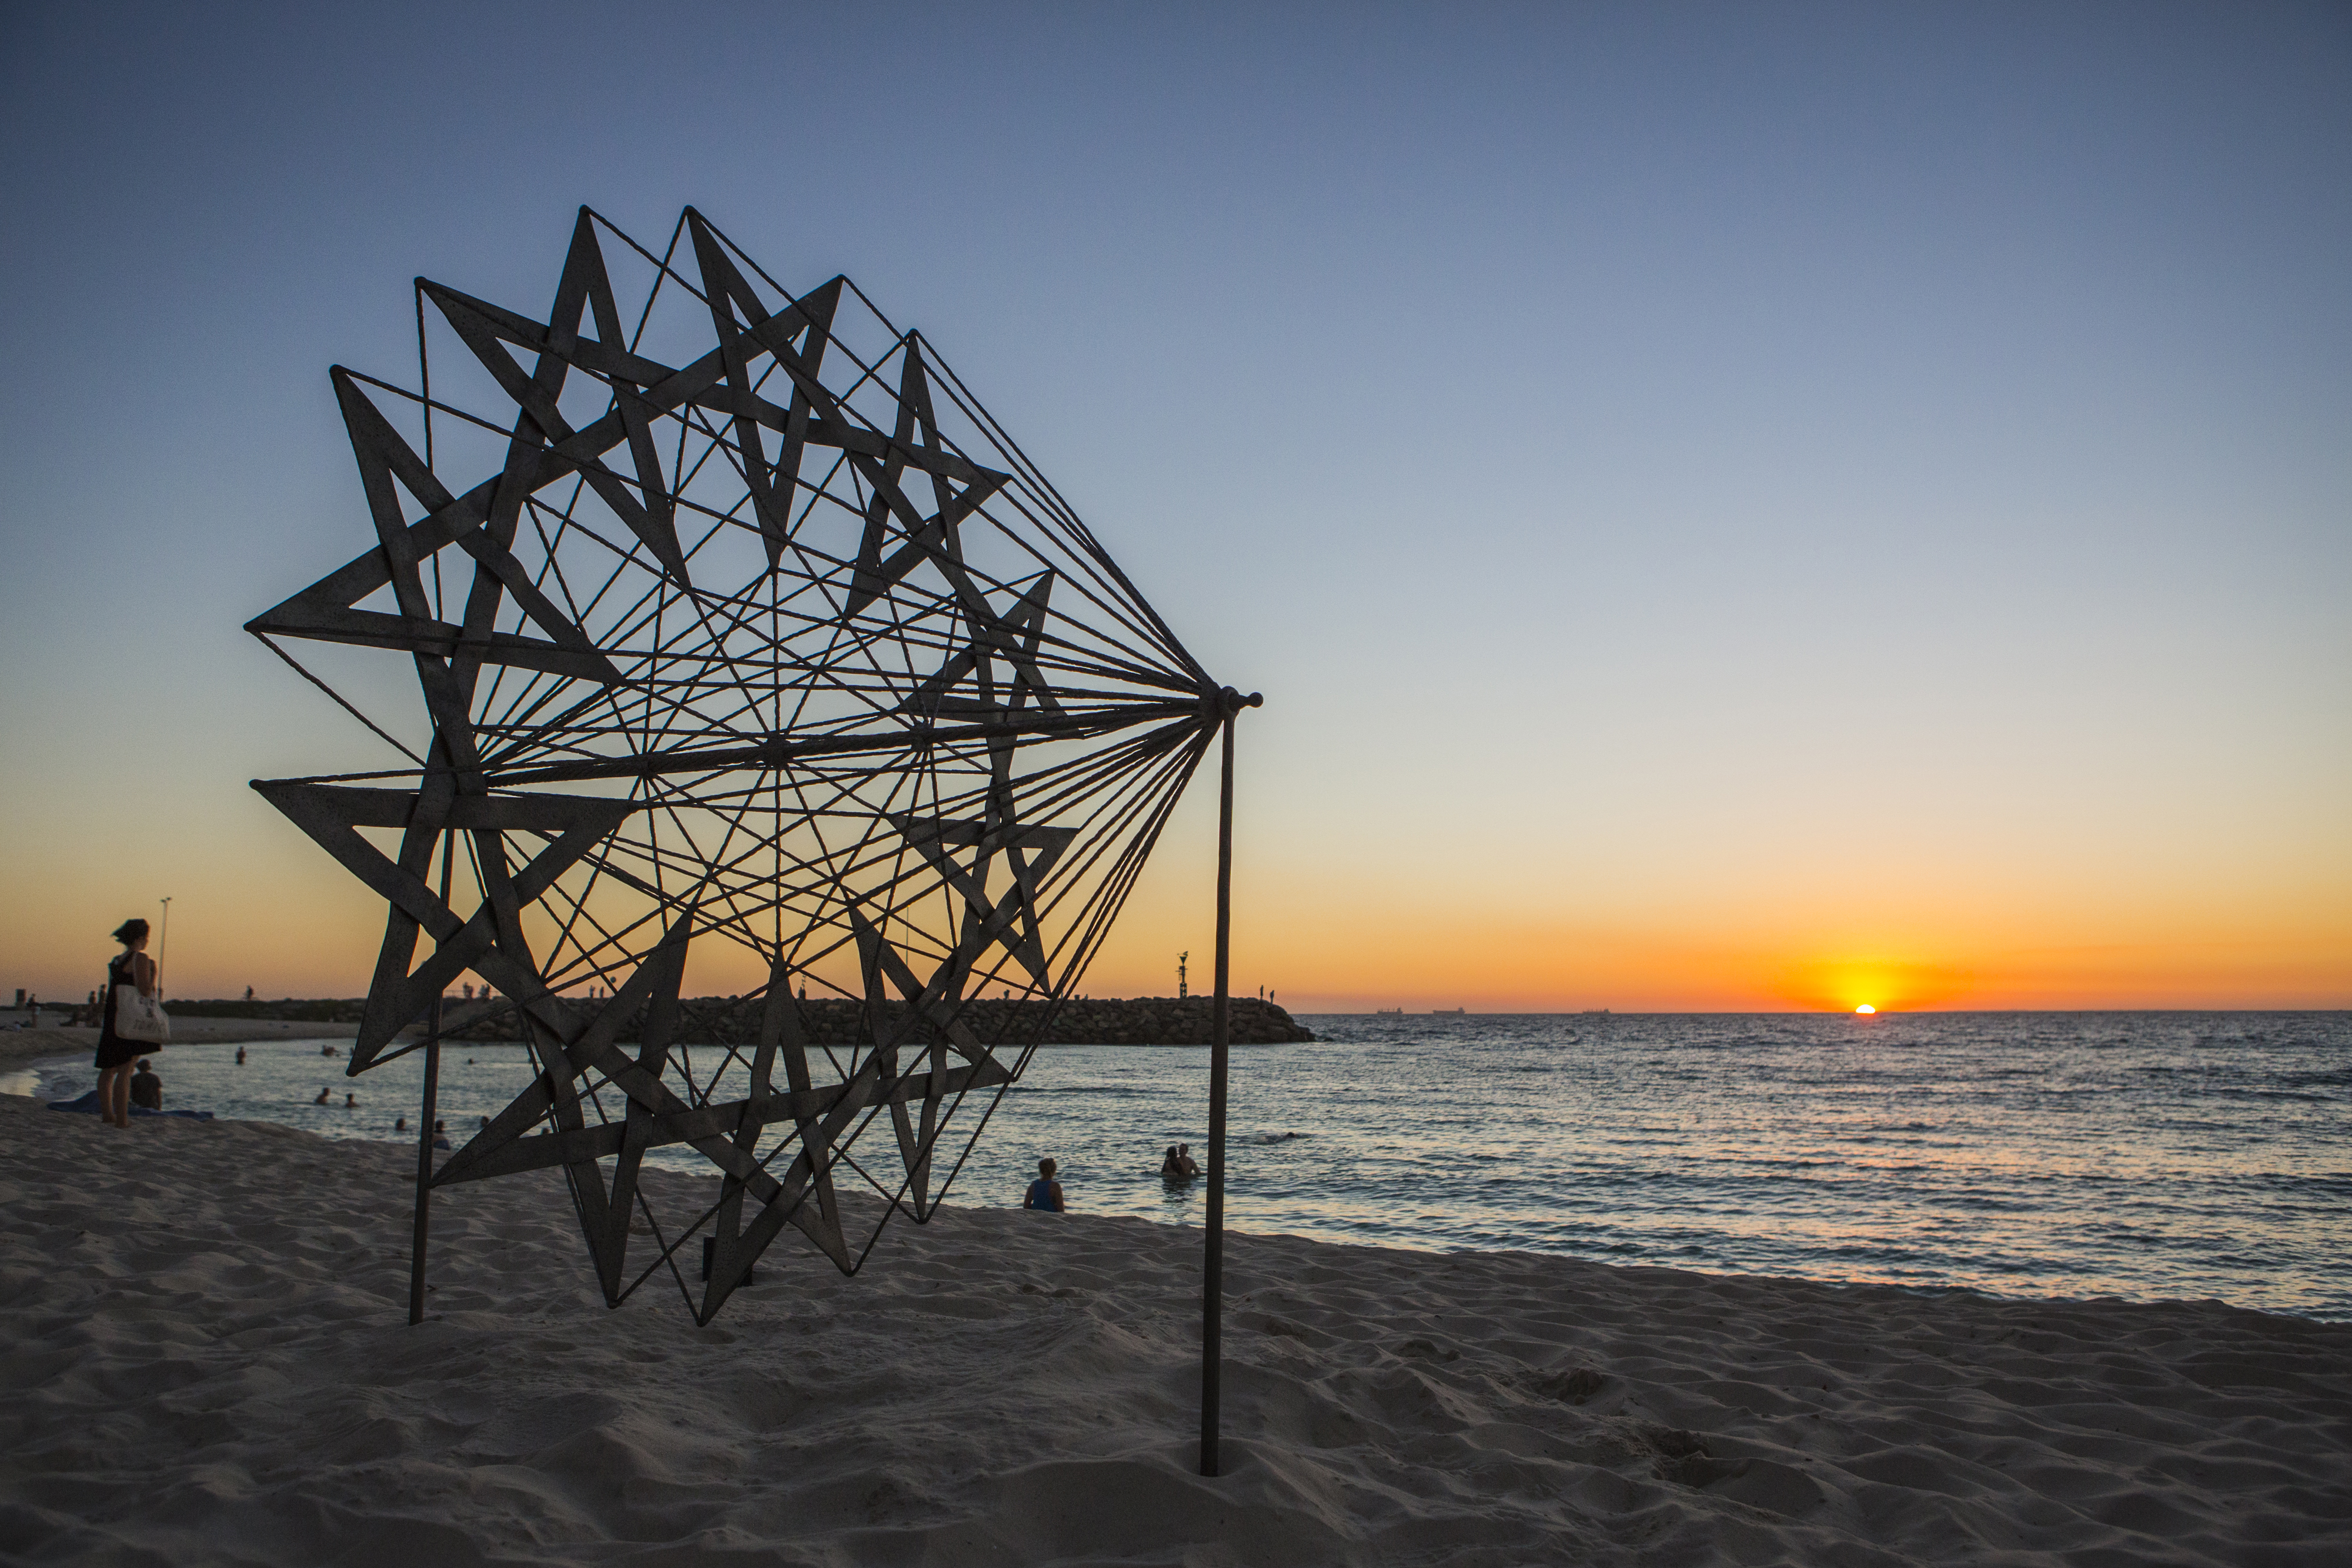 Kevin Draper, penelope's web, Sculpture by the Sea, Cottesloe 2015. Photo Jessica Wyld